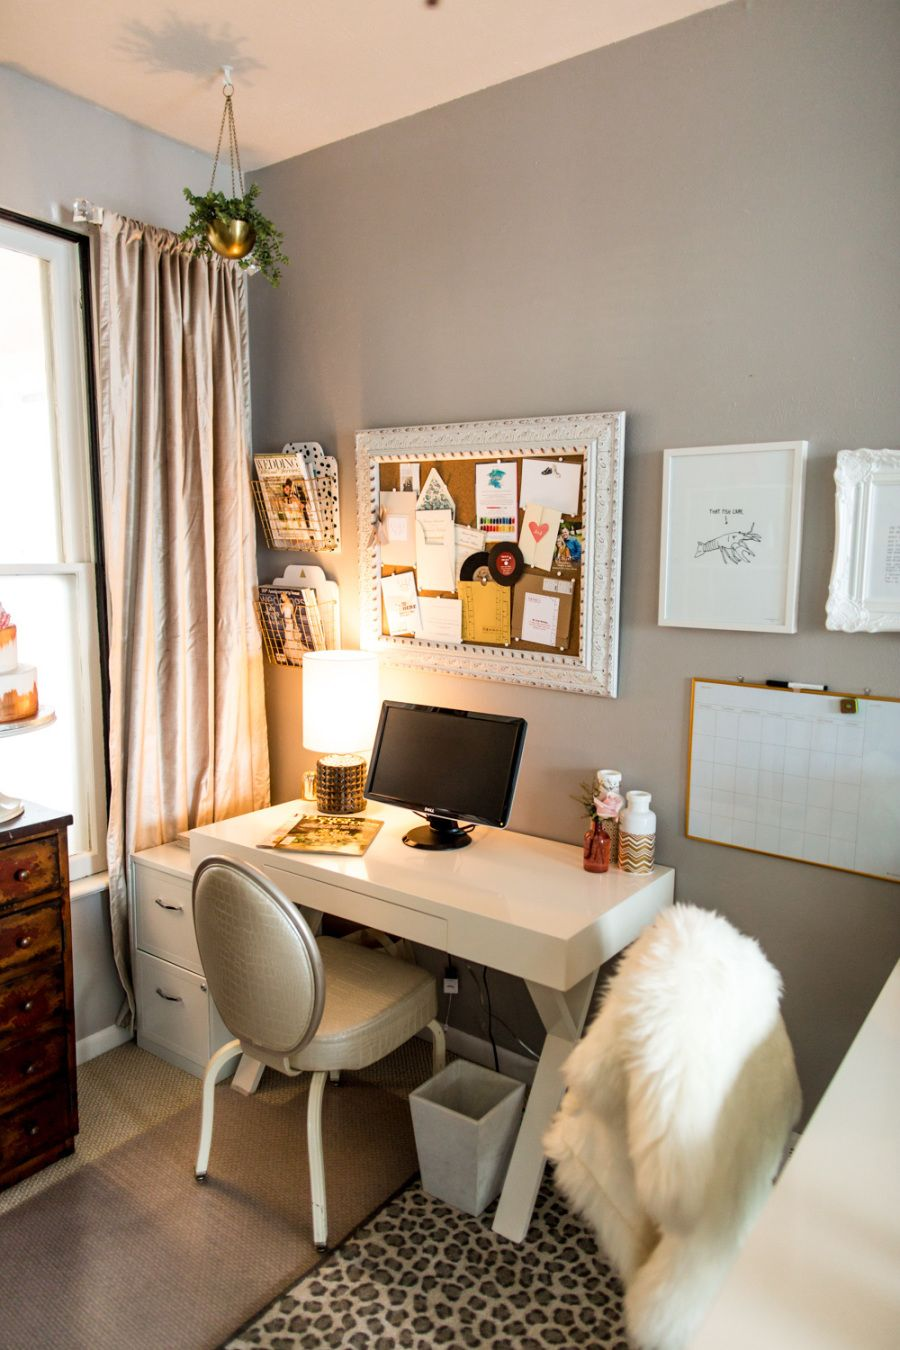 How To Live Large In A Small Office Space Living Room Office